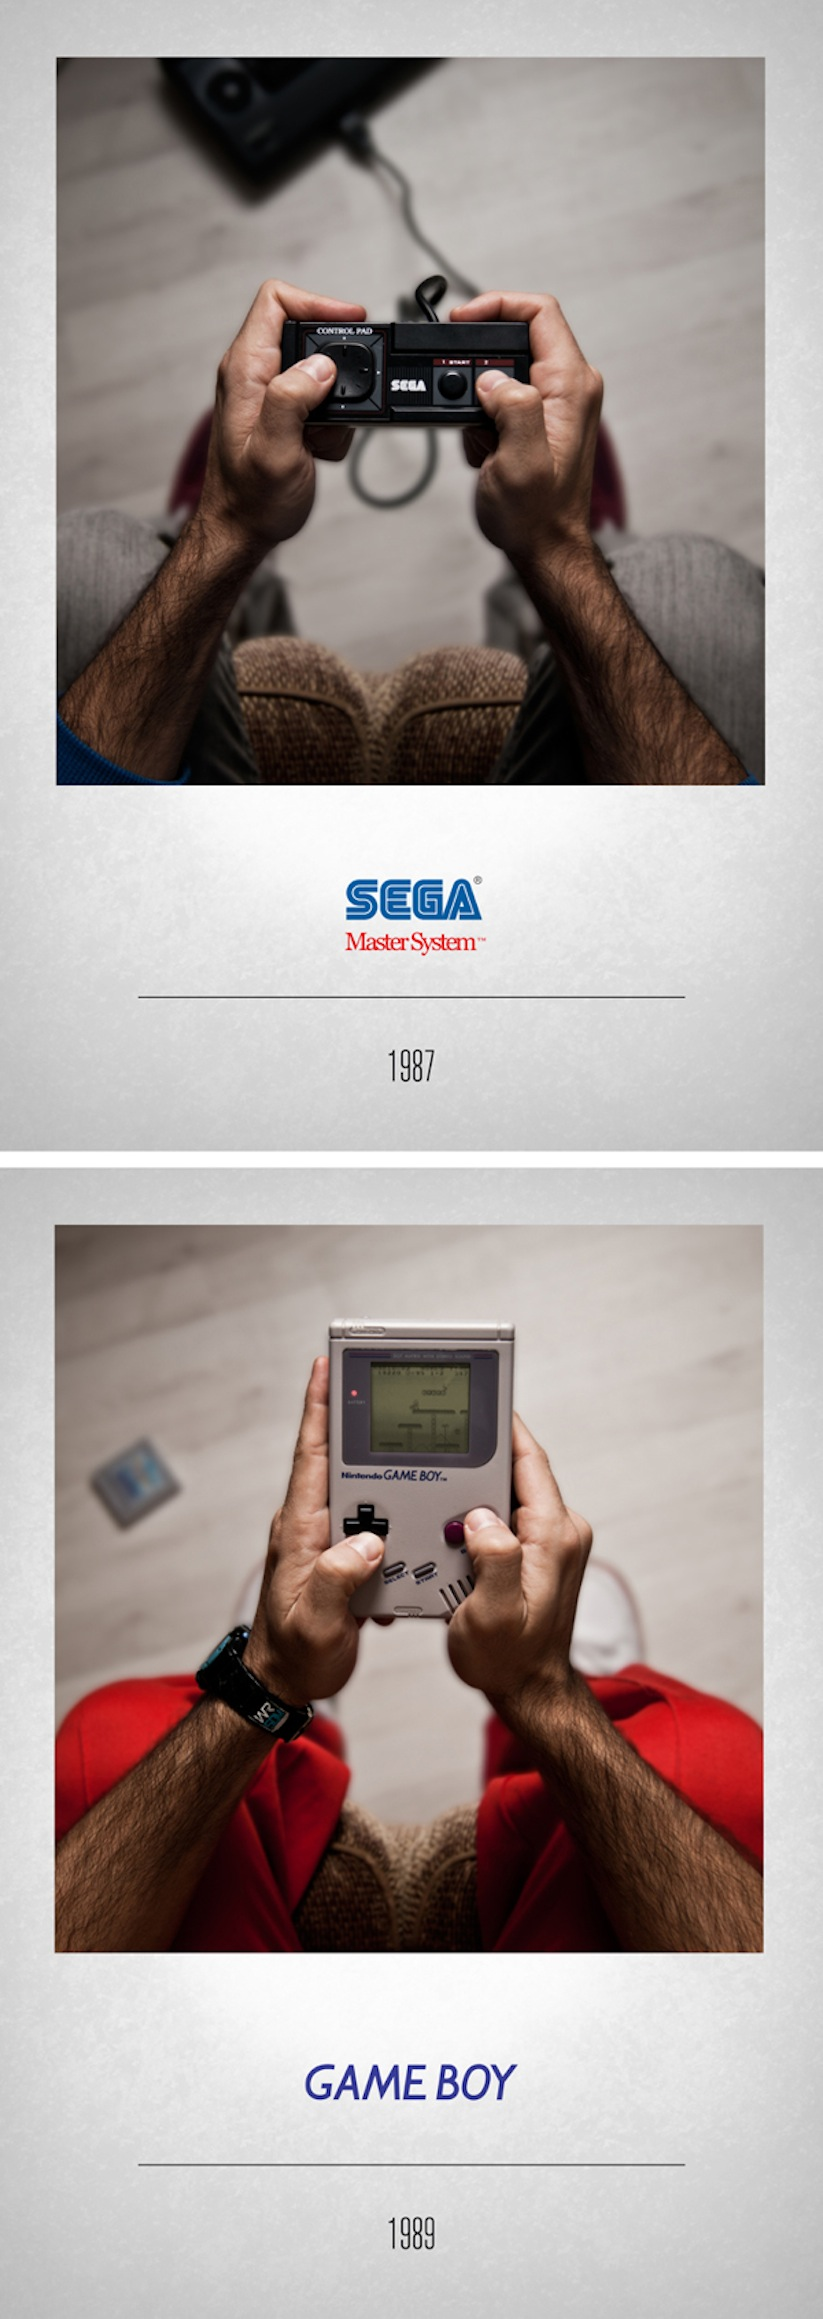 video games history_javier laspiur_3